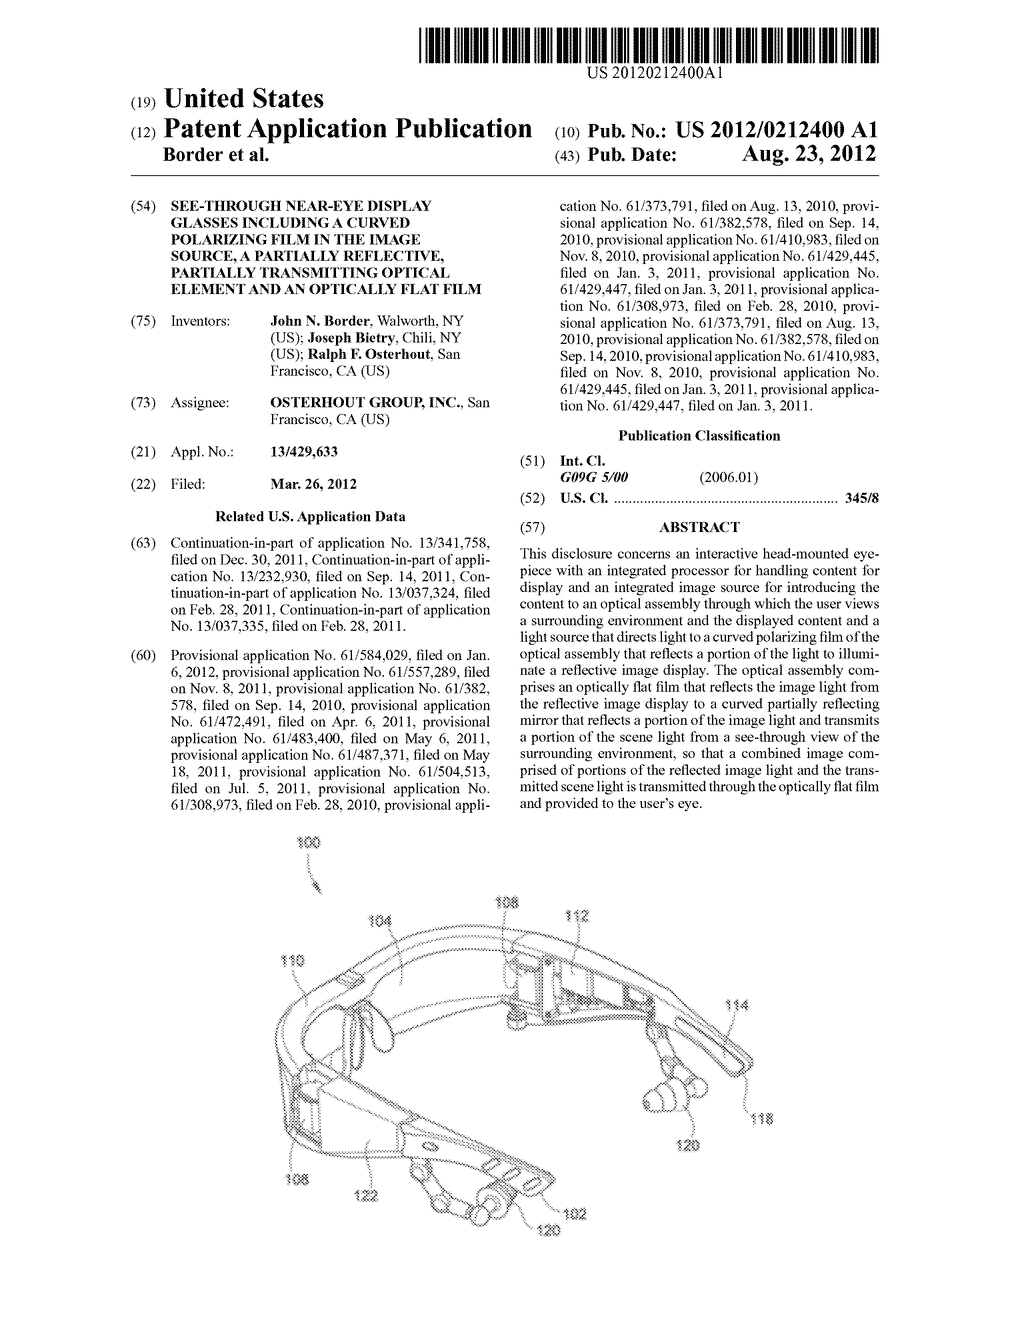 SEE-THROUGH NEAR-EYE DISPLAY GLASSES INCLUDING A CURVED POLARIZING FILM IN     THE IMAGE SOURCE, A PARTIALLY REFLECTIVE, PARTIALLY TRANSMITTING OPTICAL     ELEMENT AND AN OPTICALLY FLAT FILM - diagram, schematic, and image 01